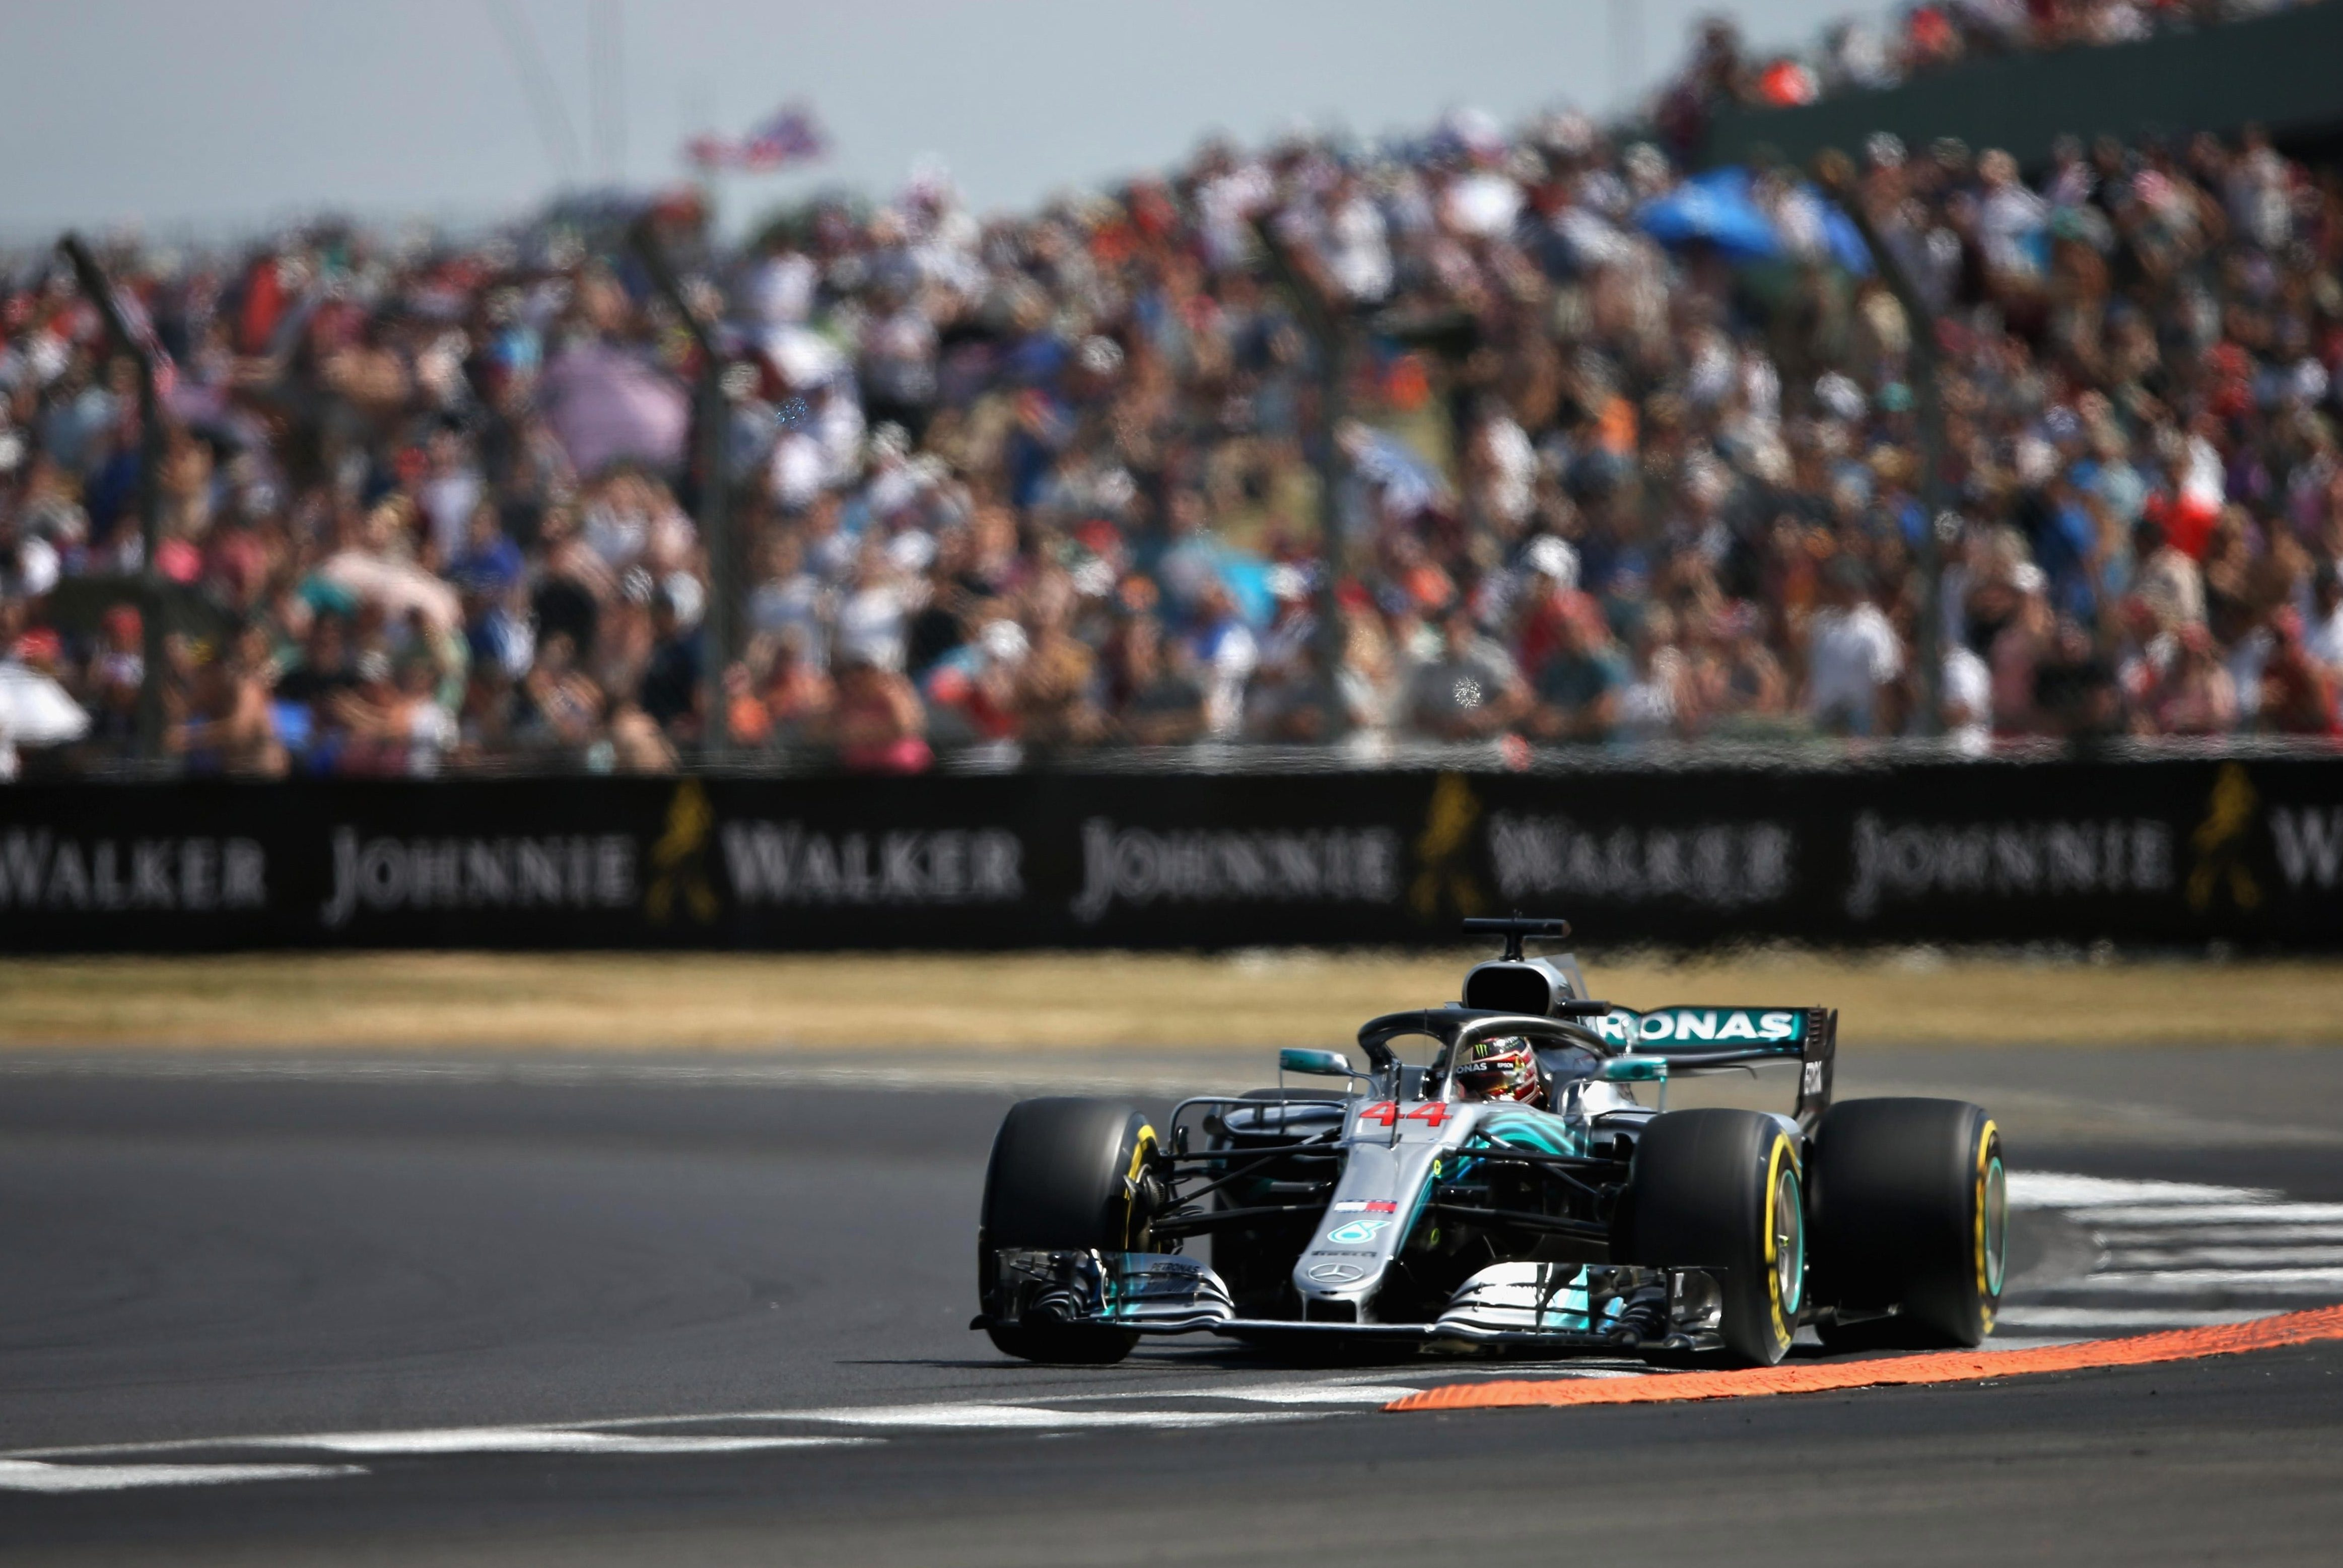 The British Grand Prix will be shown free to air on Channel 4 next year